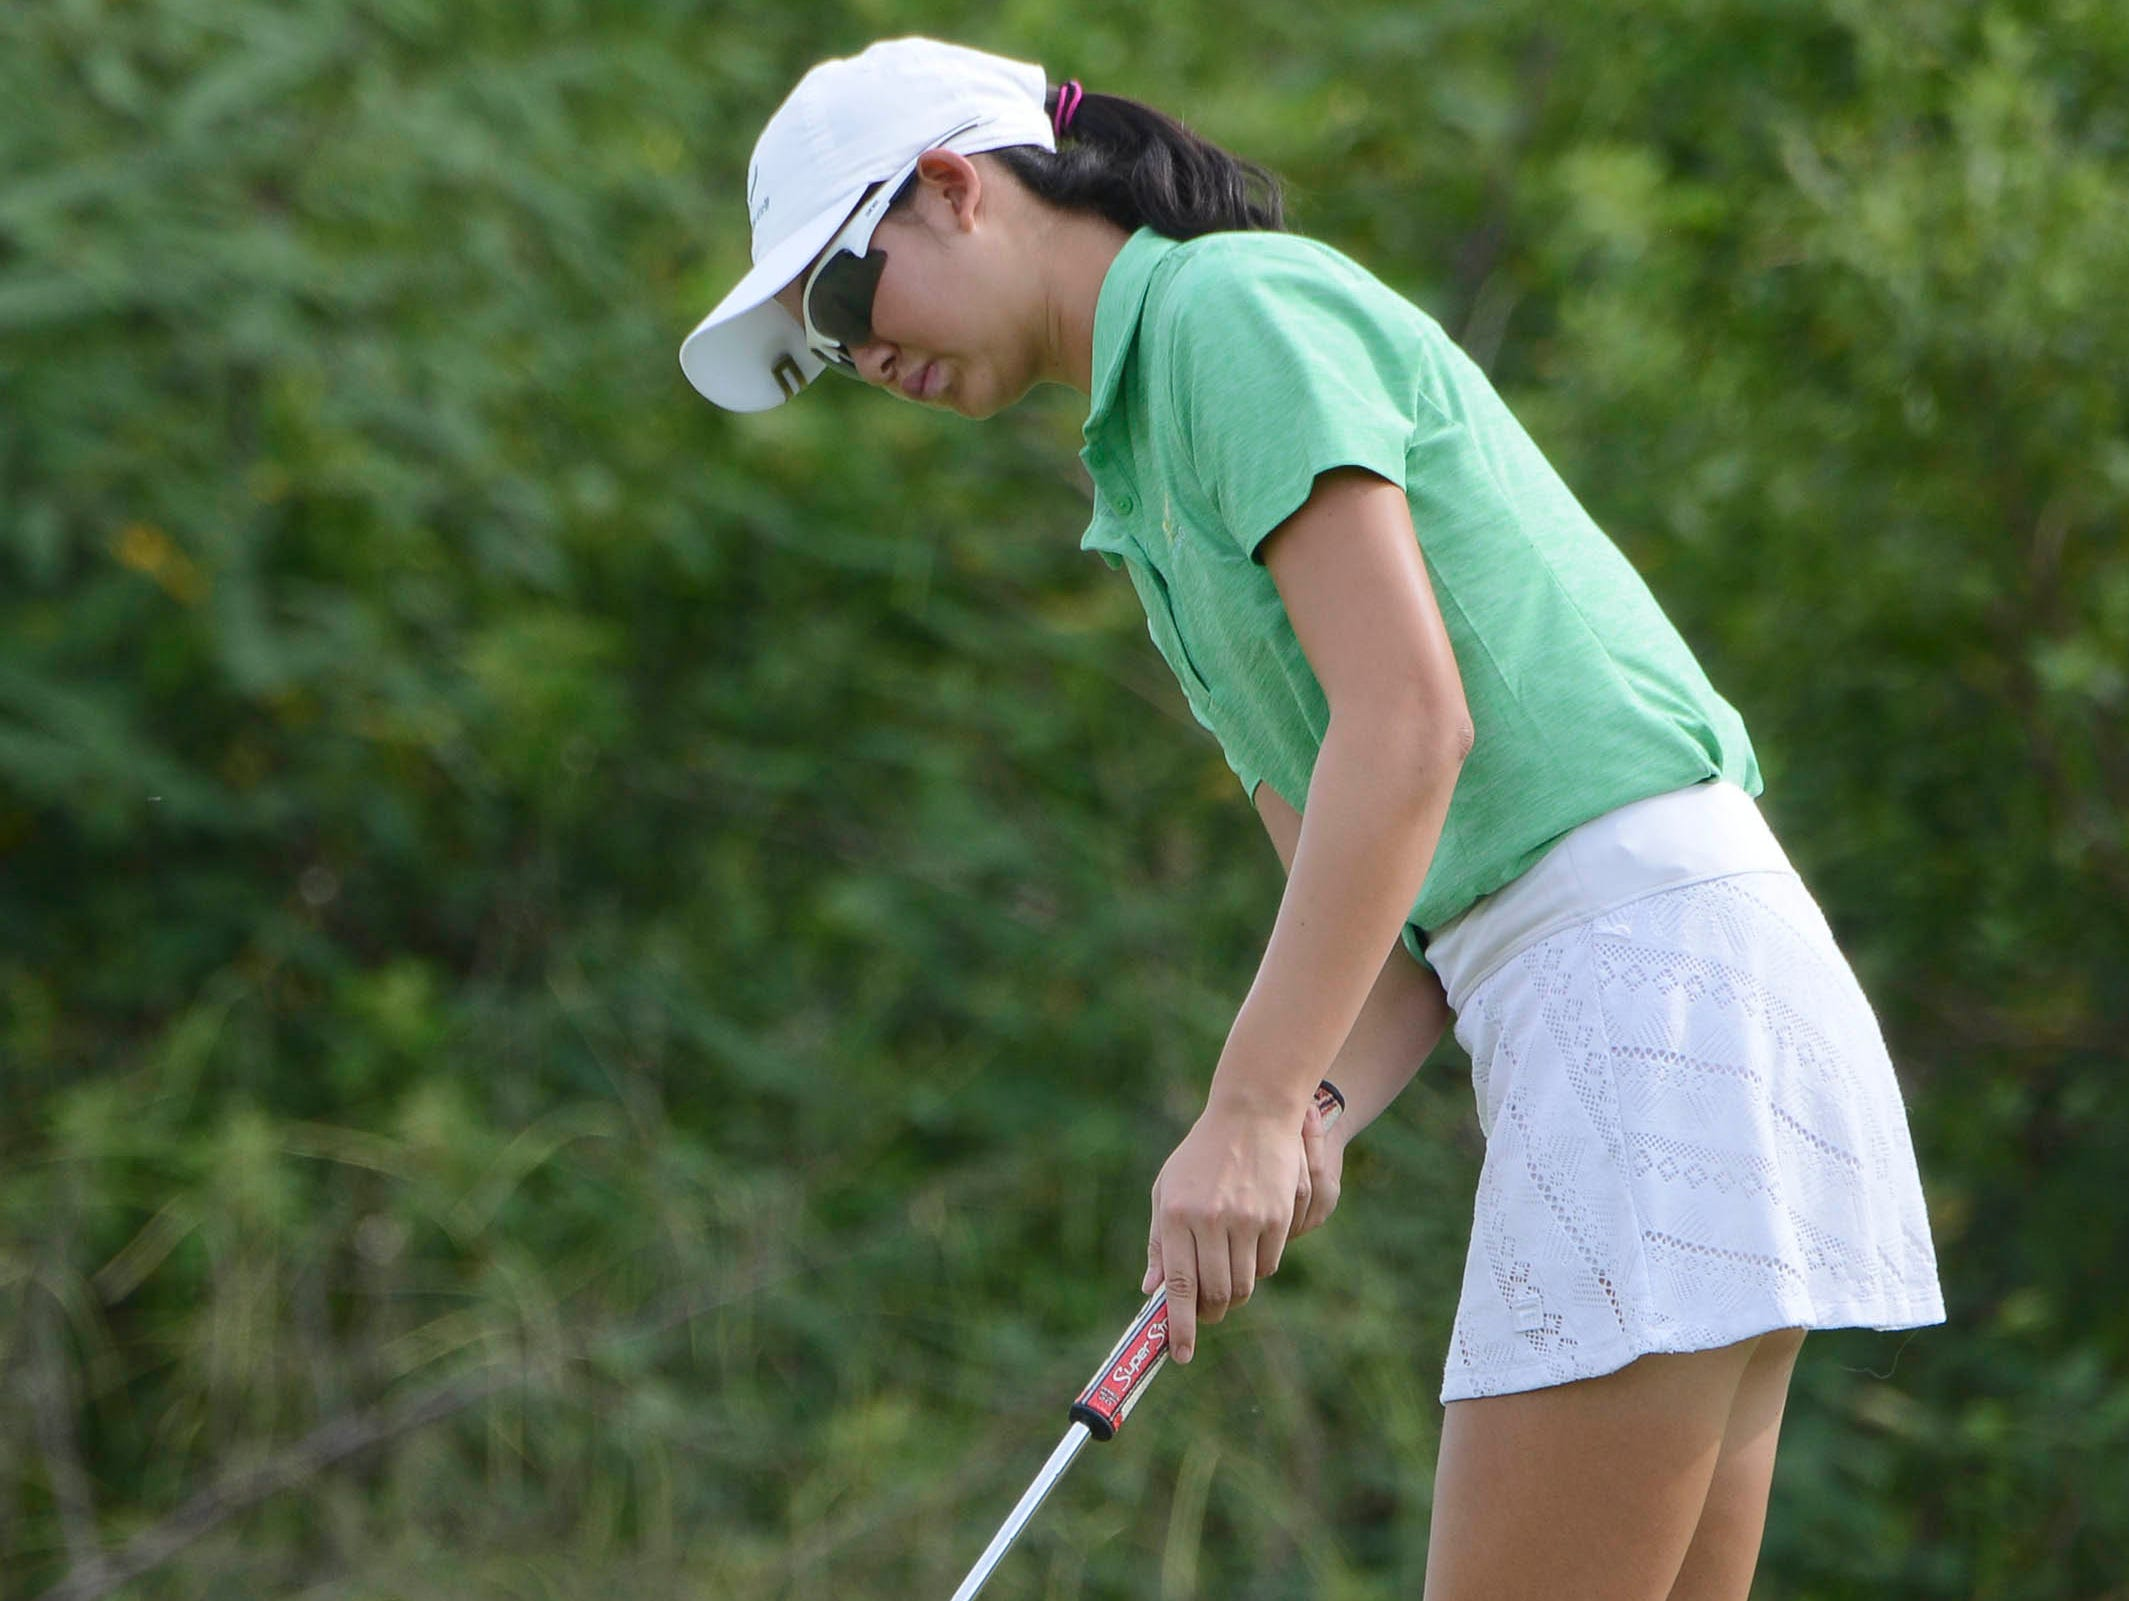 Sophie Liu of Viera putts during Thursday's match against Heritage at Baytree National.